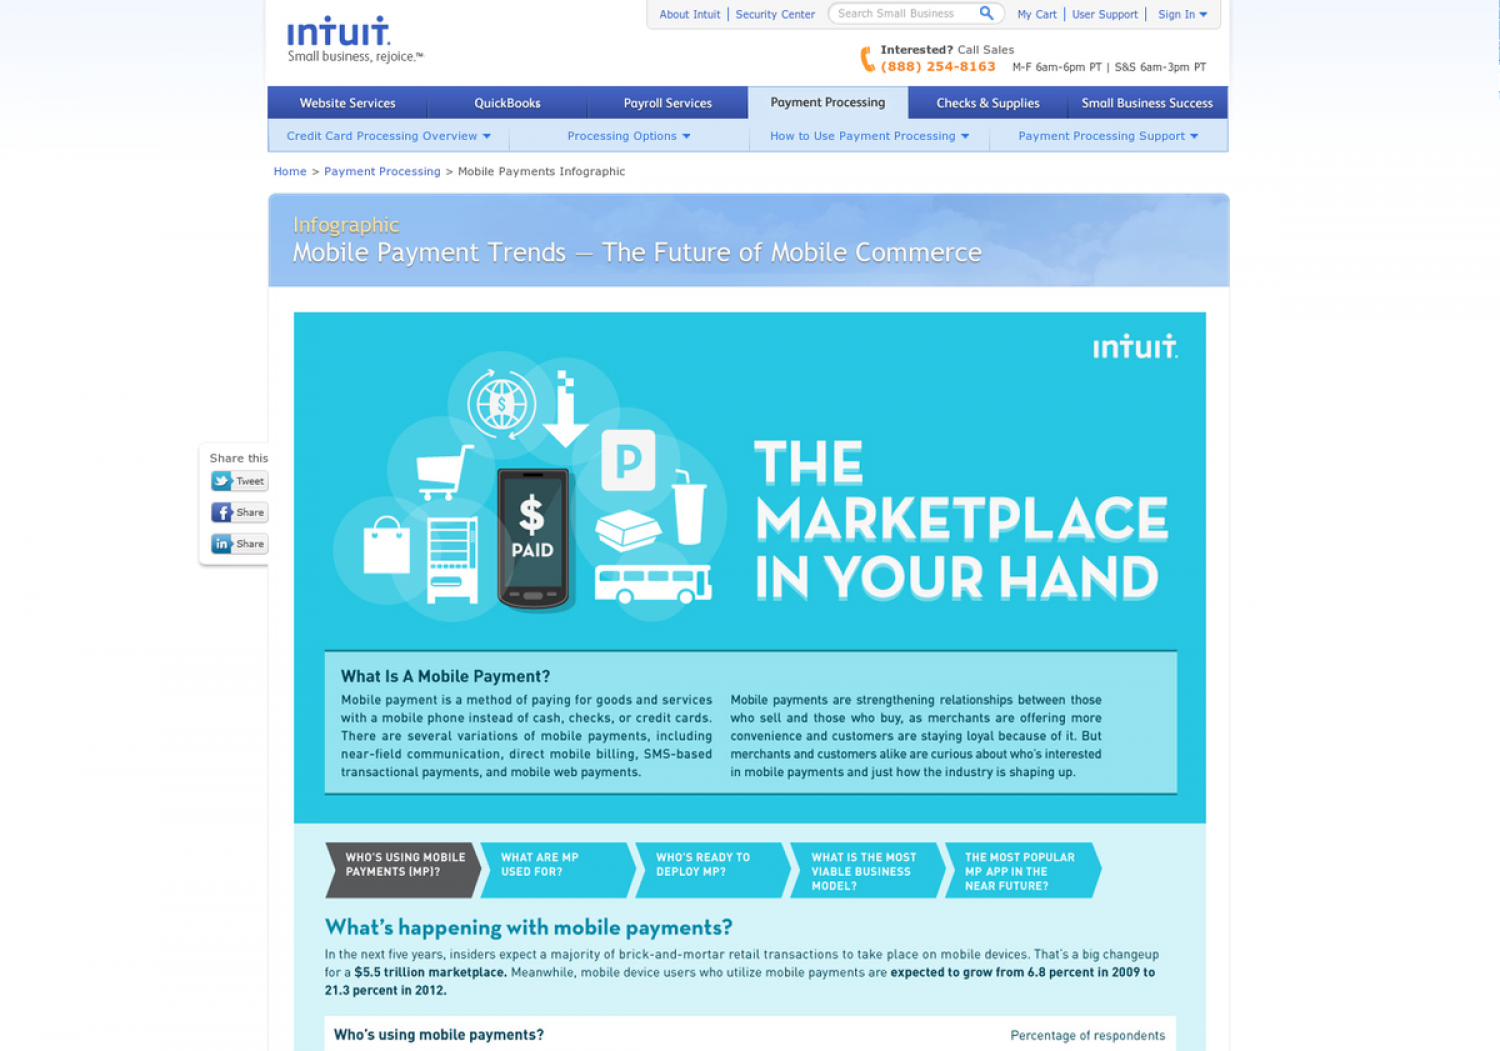 Mobile Payment Trends: The Marketplace in Your Hands Infographic